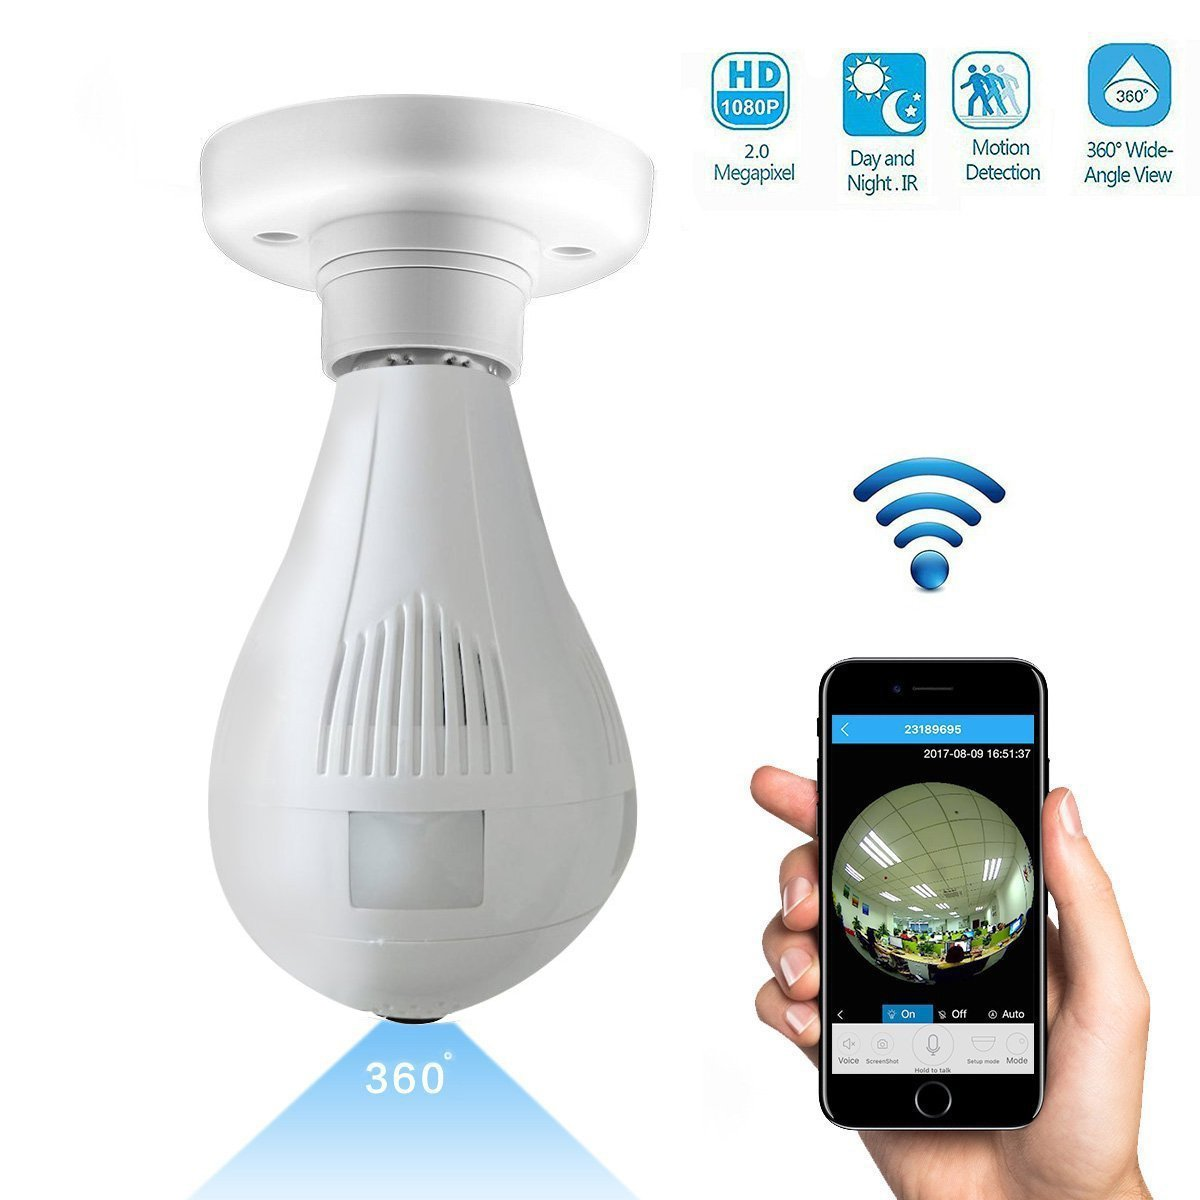 1080P Wifi Wireless IP Bulb Camera with Fisheye Lens 360° Panoramic for Remote Home Security System,Motion Detection and Two Way Talking for iPhone/Android Phone/iPad (1080P)